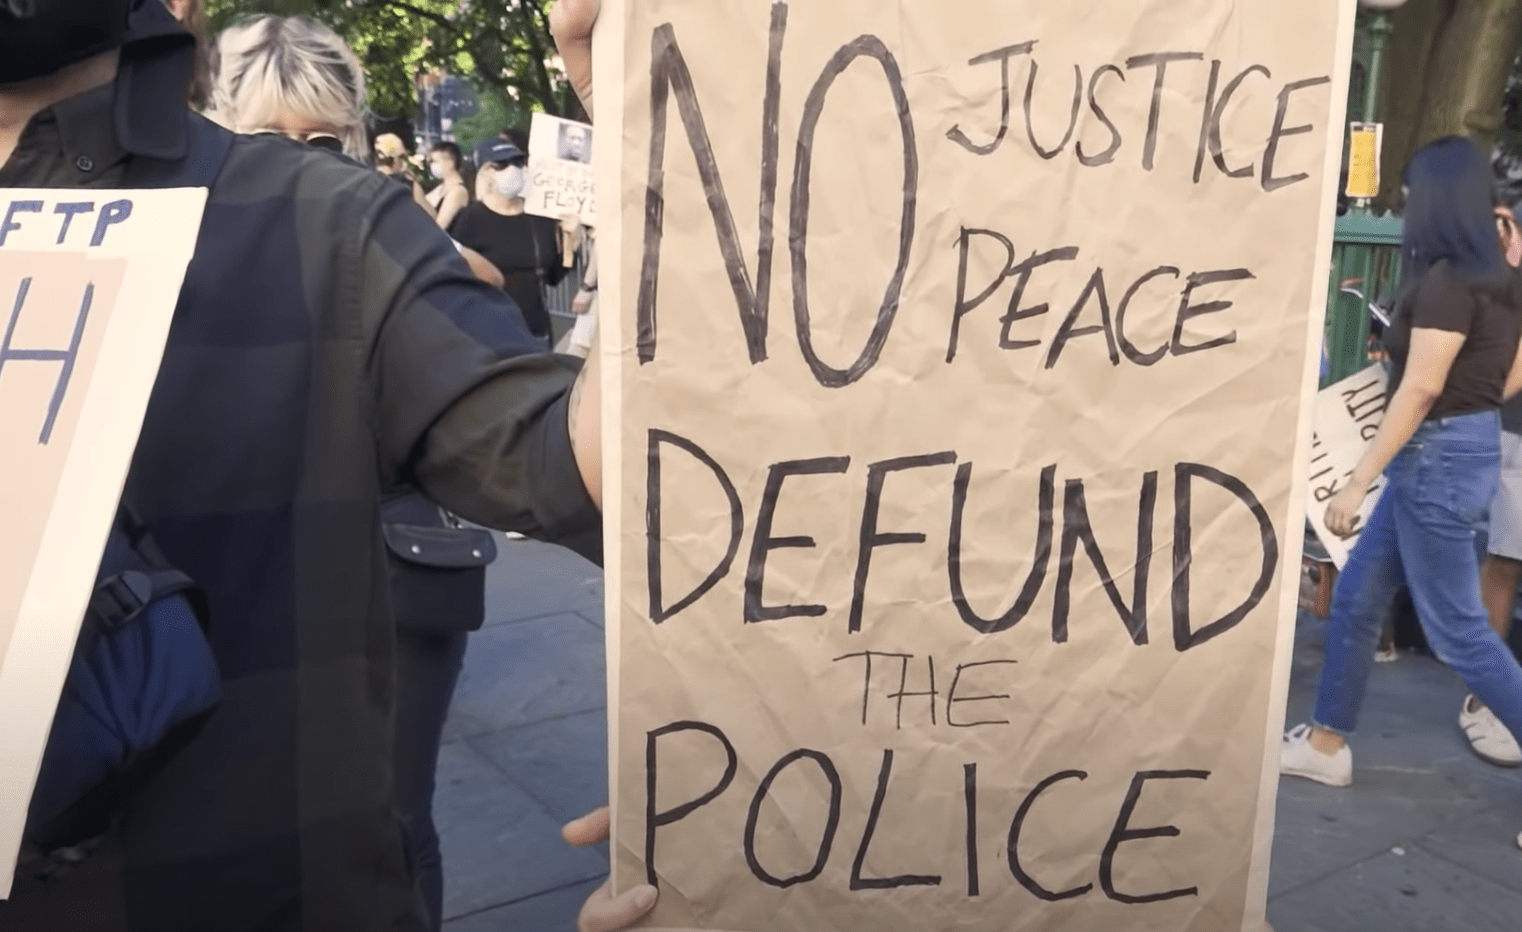 Poll: Vast majority of people oppose defunding and abolishing police (despite what the media suggests)